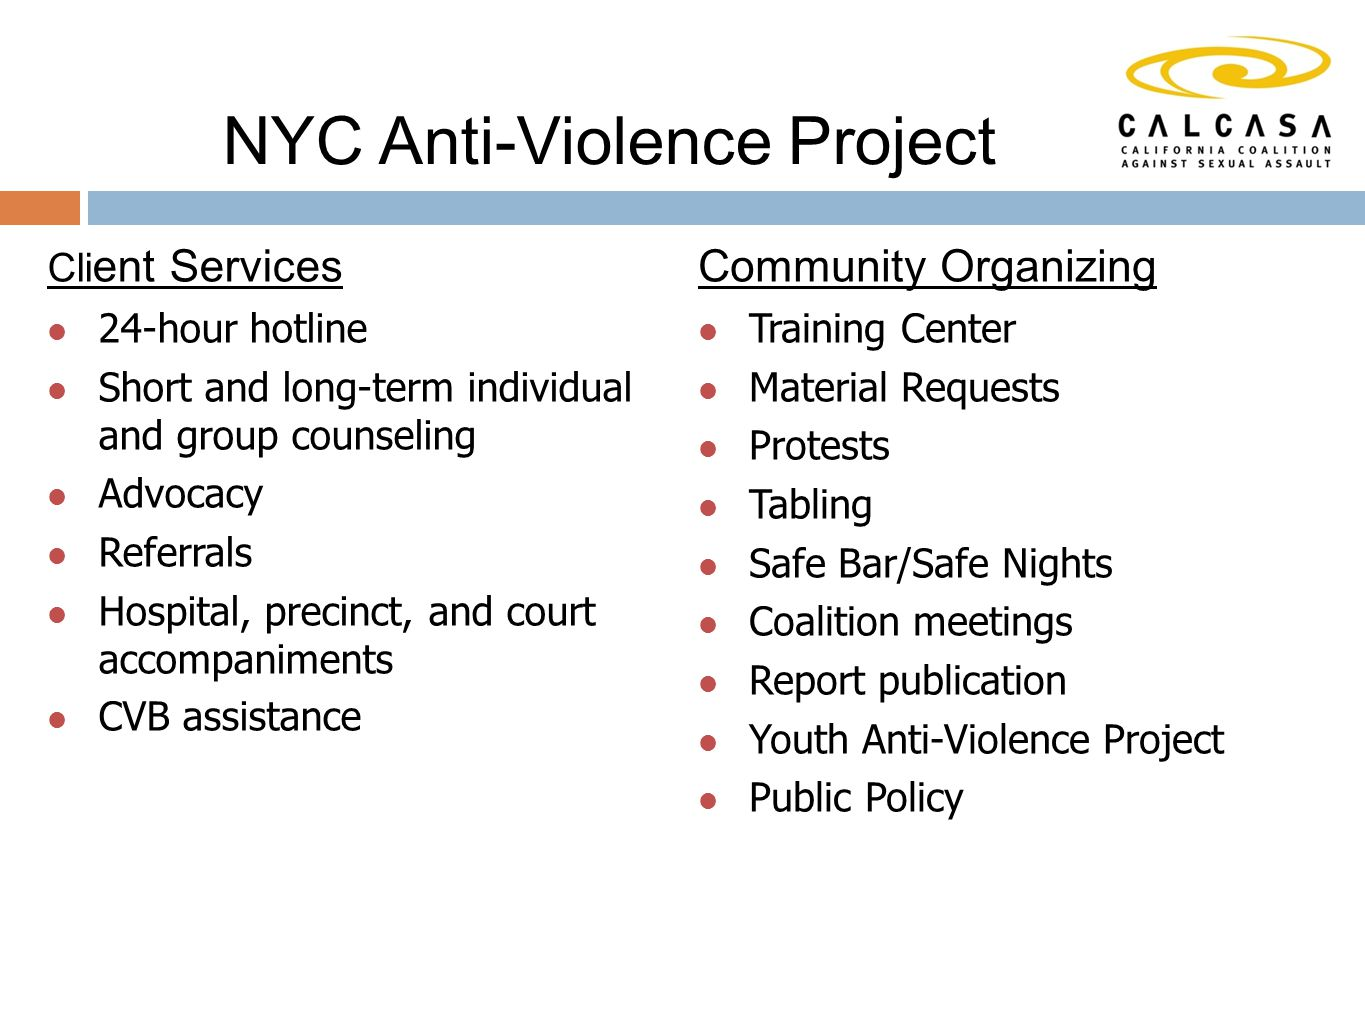 NYC Anti-Violence Project Cli ent Services 24-hour hotline Short and long-term individual and group counseling Advocacy Referrals Hospital, precinct, and court accompaniments CVB assistance Community Organizing Training Center Material Requests Protests Tabling Safe Bar/Safe Nights Coalition meetings Report publication Youth Anti-Violence Project Public Policy